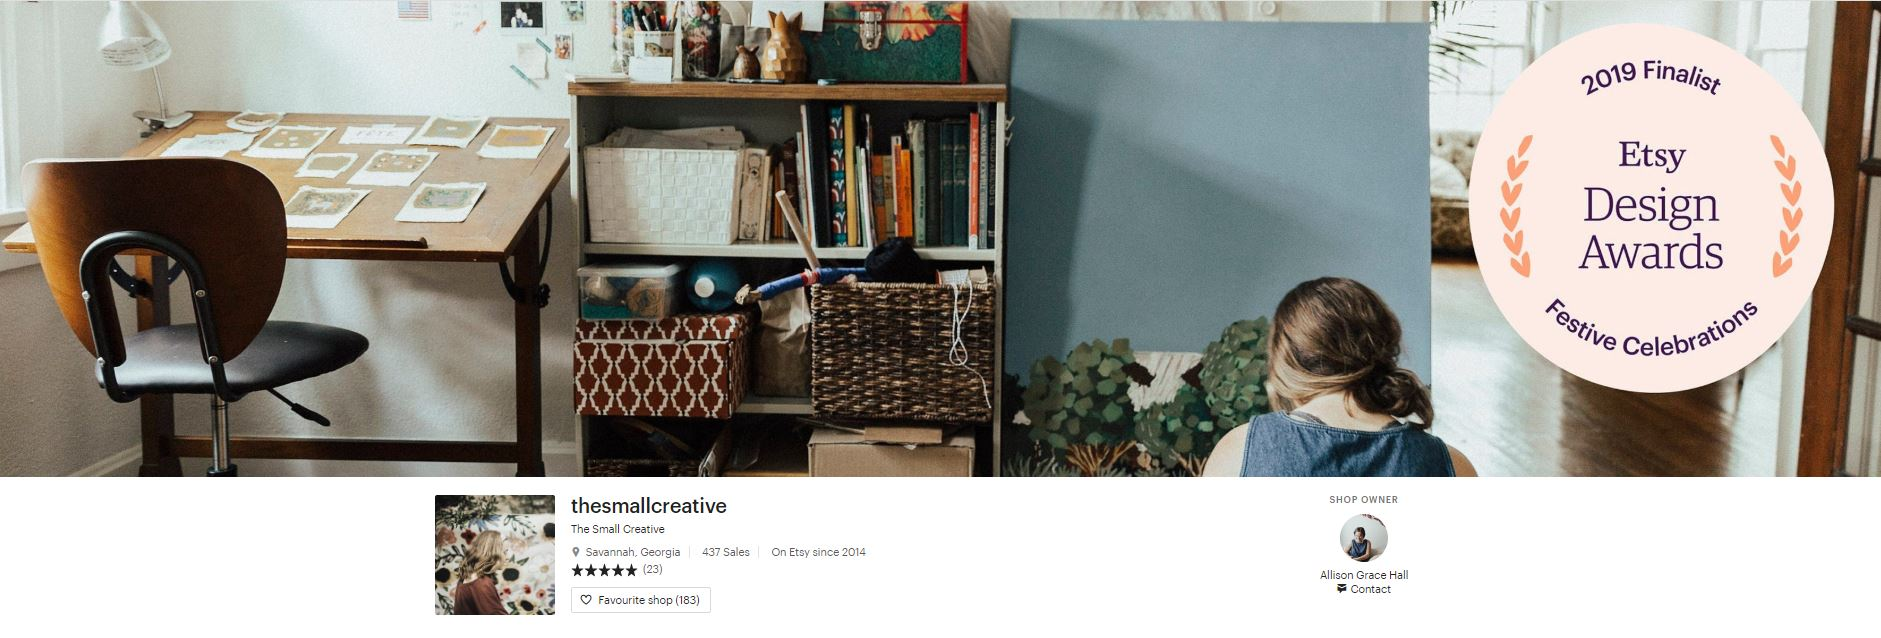 TheSmallCreative  keeps a consistent color palette and welcomes us into a quiet world of crafting. We feel like we're in the seller's story already.